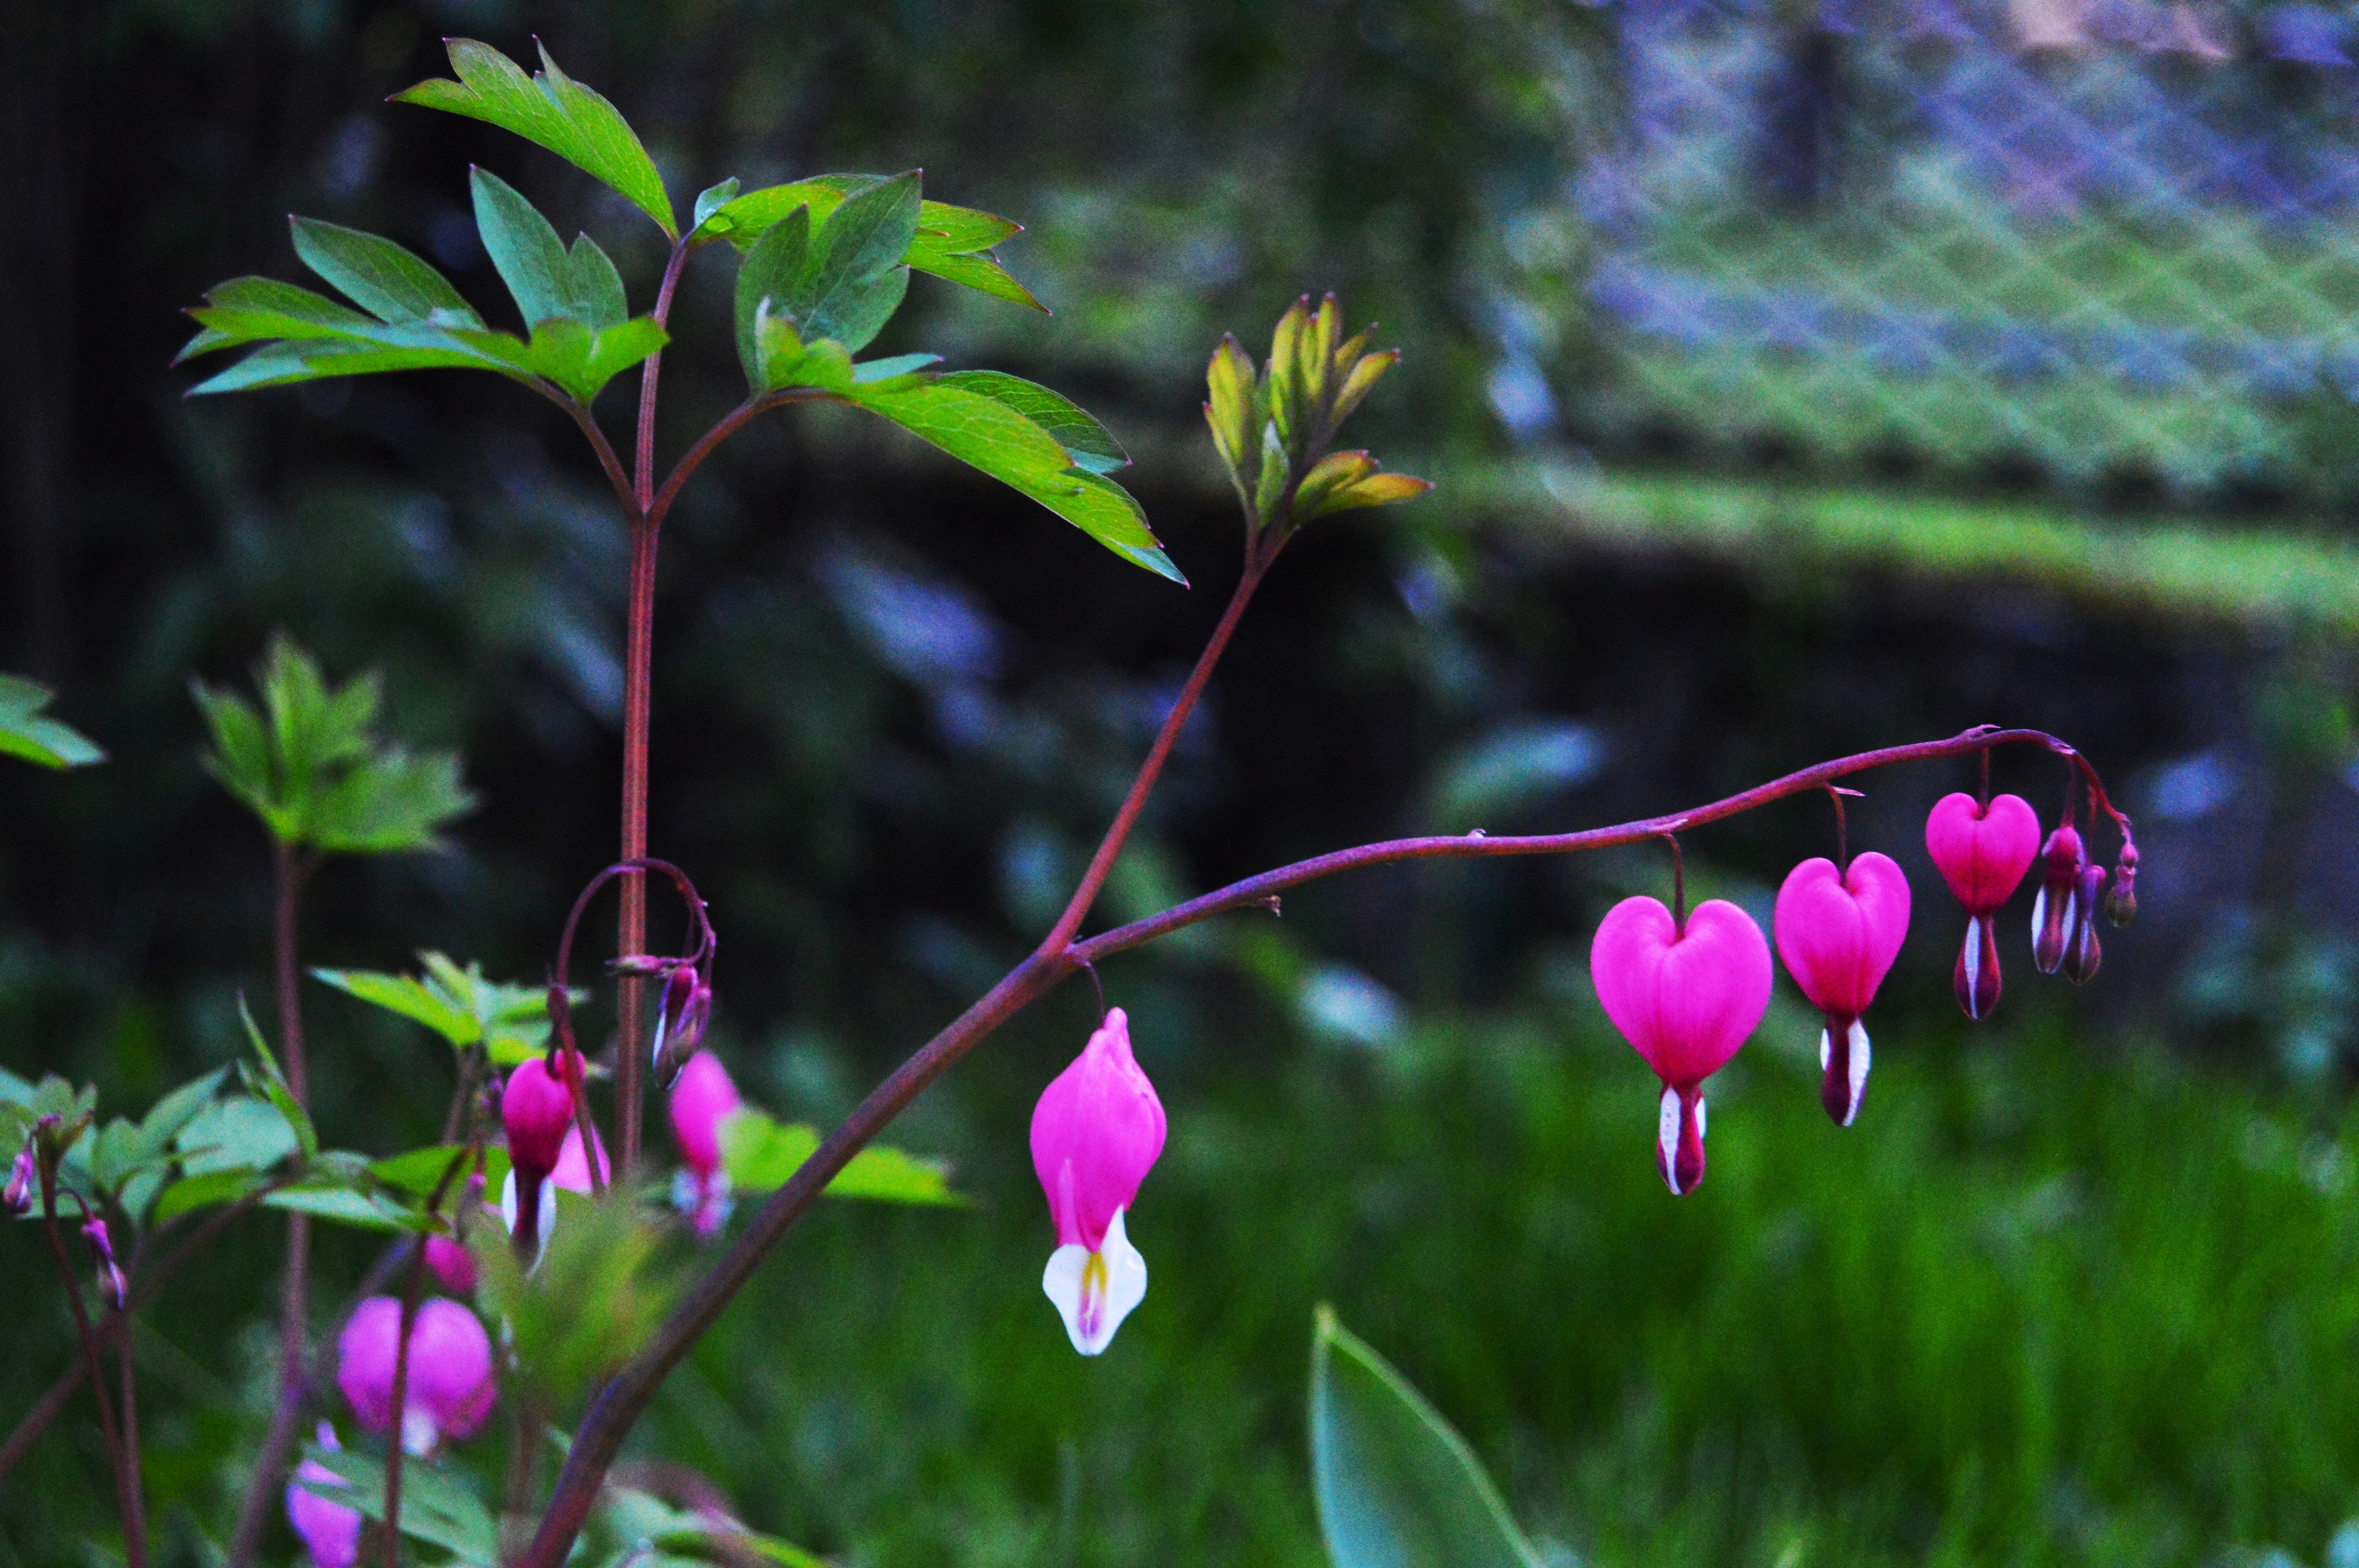 Pink And White Bleeding Heart Flowers Selective Focus Photography At